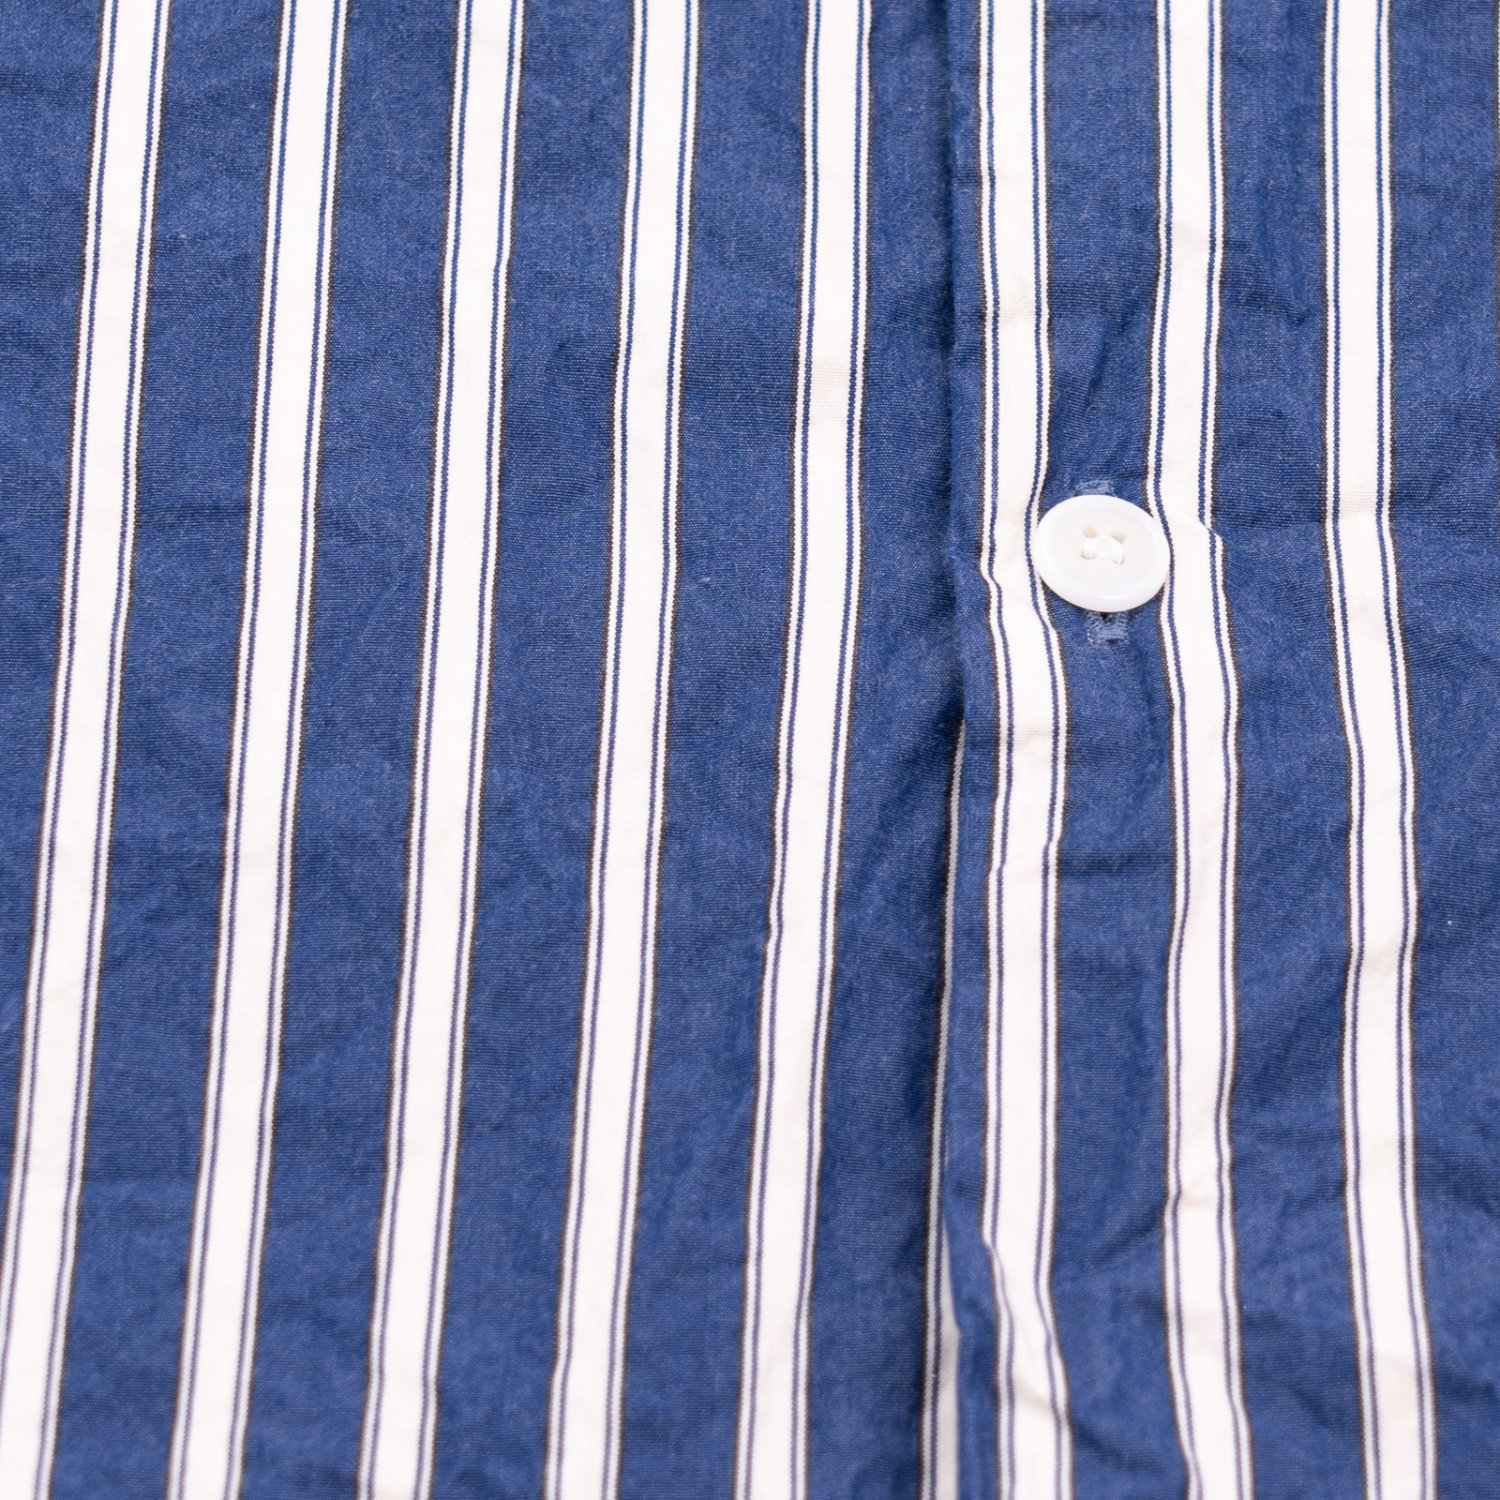 CASEY CASEY * 17HC231 FABIANO WITHOUT COLLAR SHIRT CANVAS * Blue